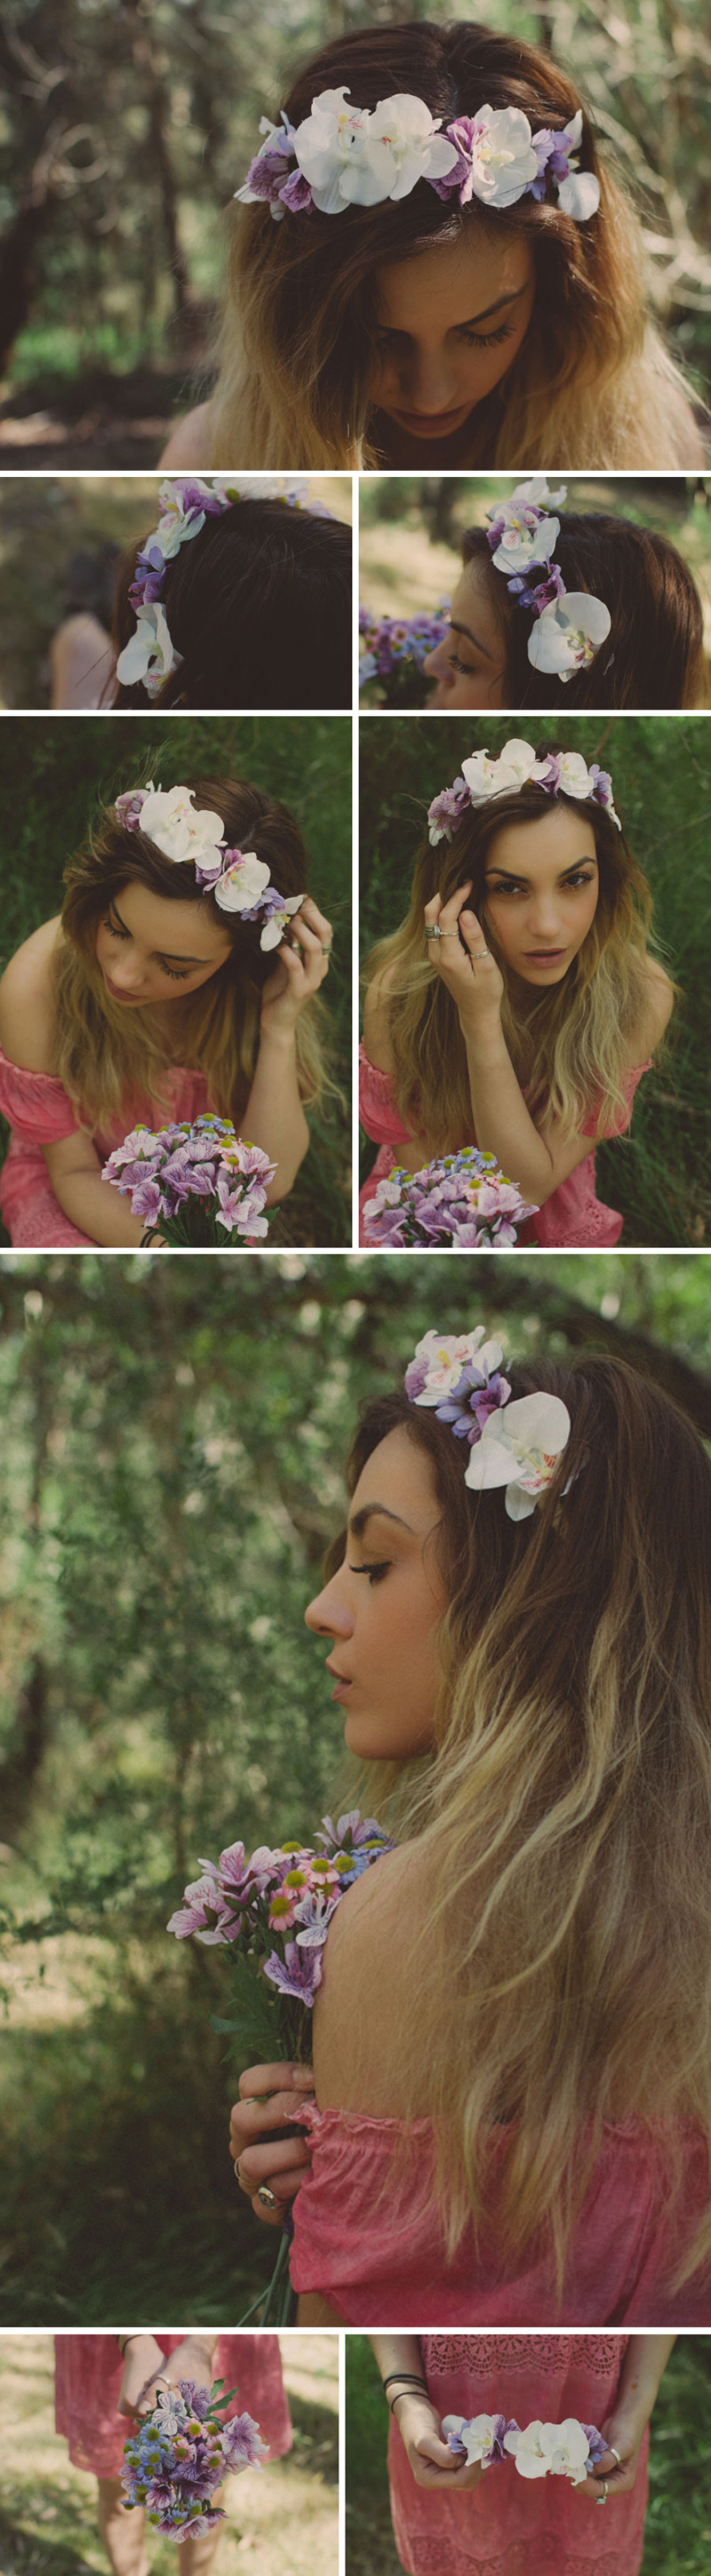 Diy Floral Crown Collage Via Fawn Mag Diy Projects Pinterest